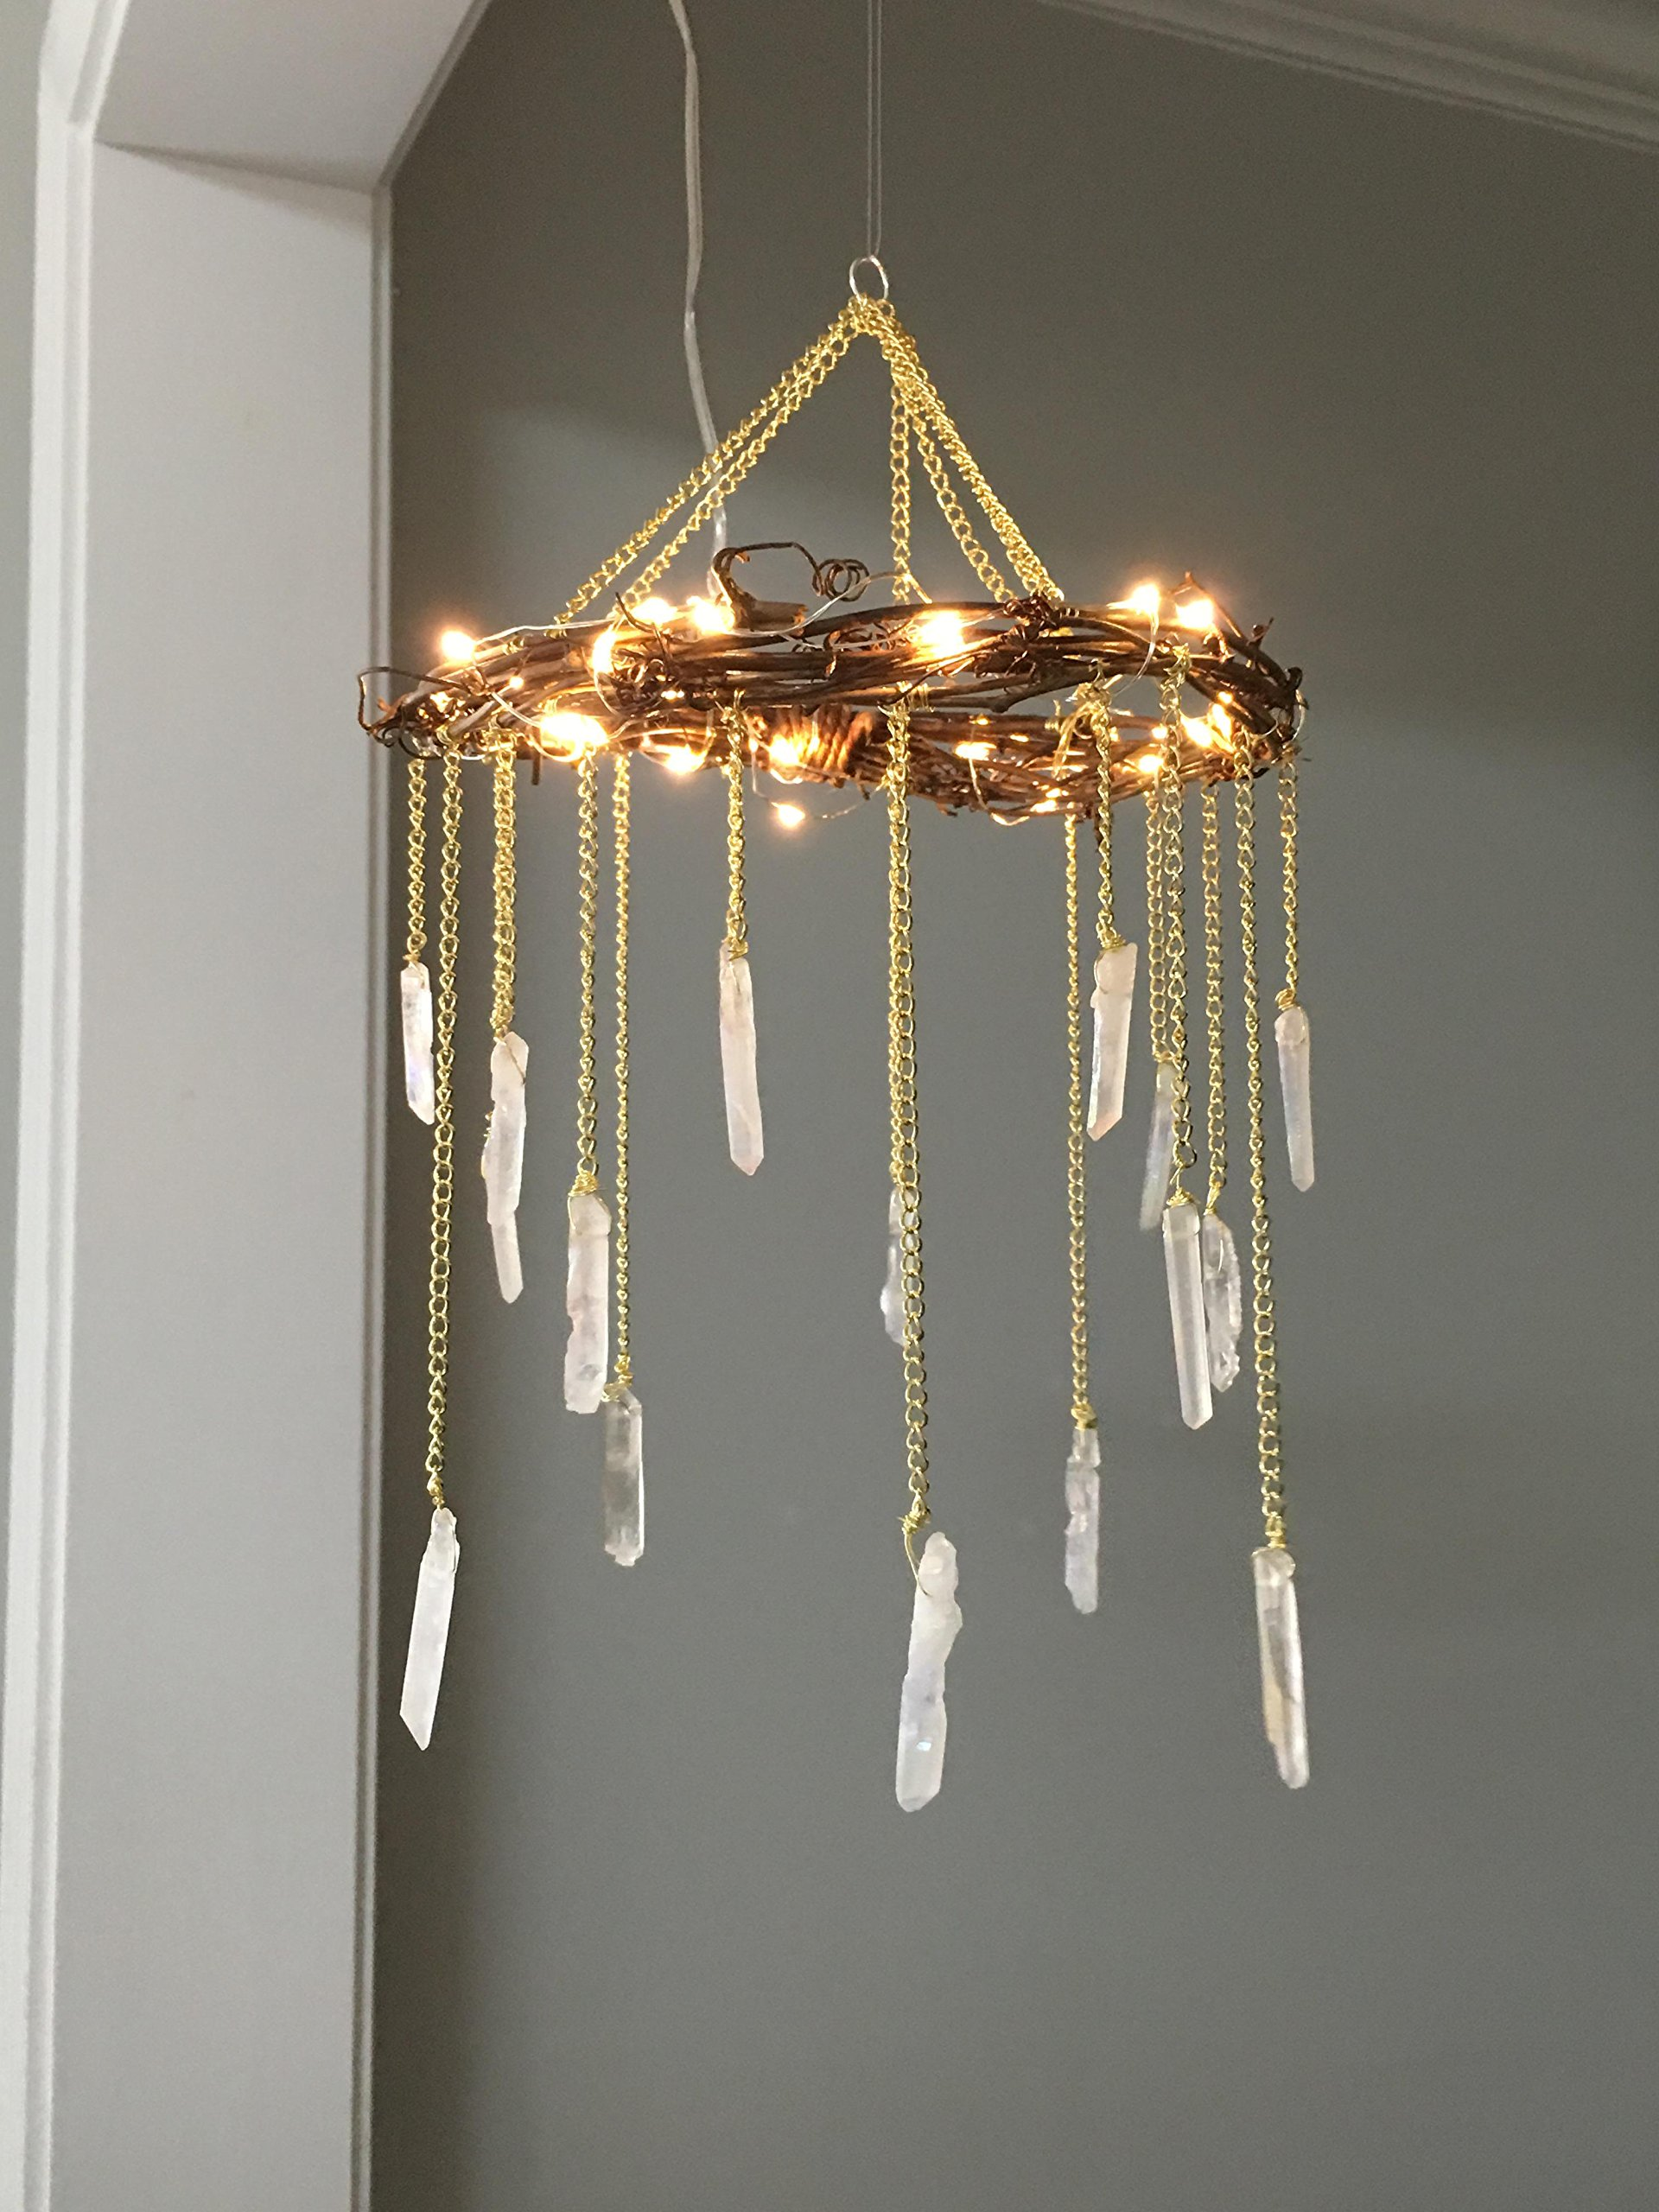 Full Size Handcrafted Natural Crystal Chandelier - Bohemian Room Chandelier by Blue Lotus Designs